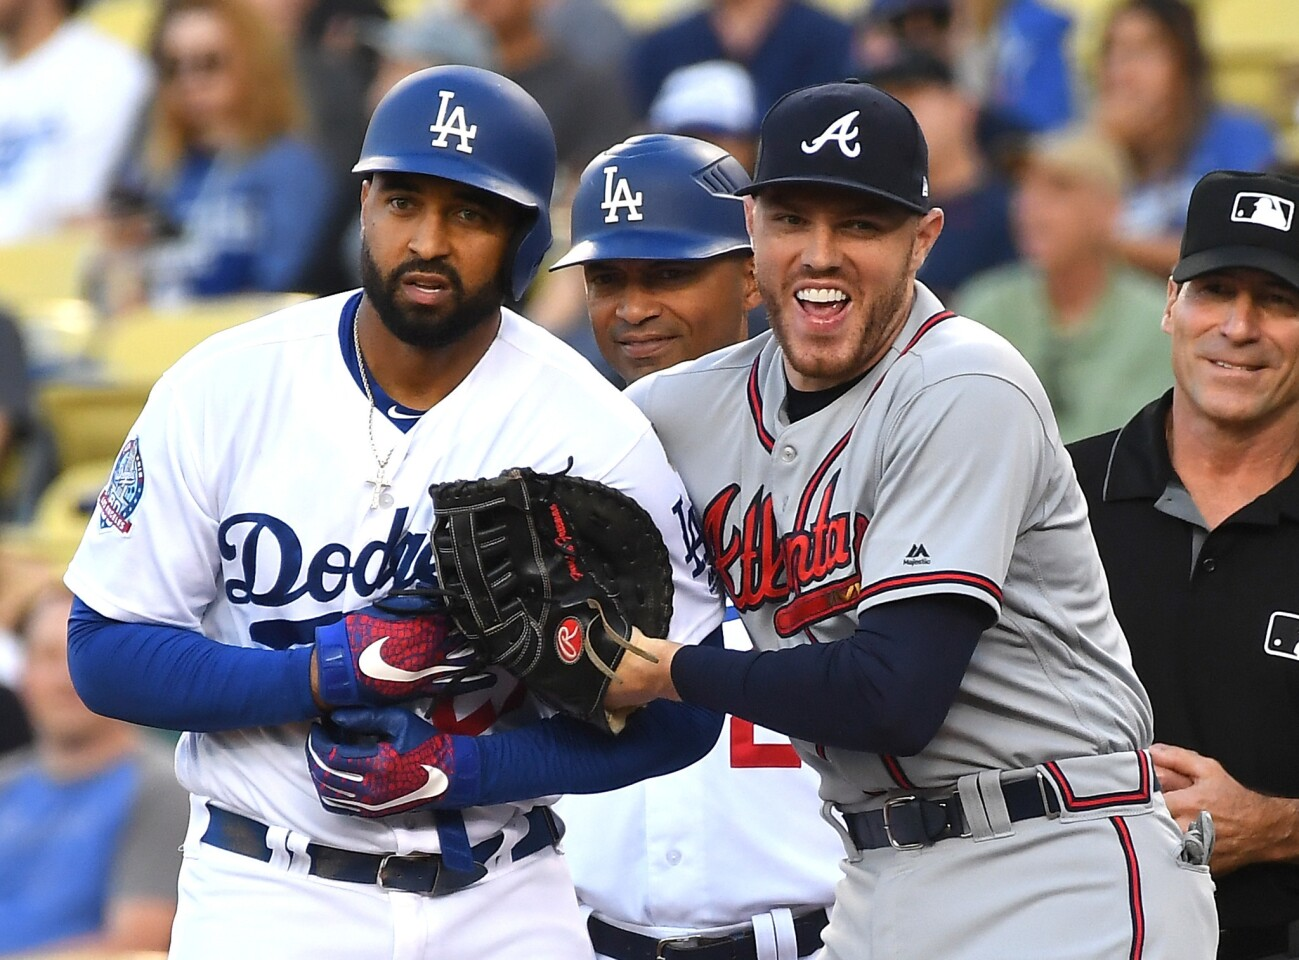 LOS ANGELES, CA - JUNE 08: Matt Kemp #27 of the Los Angeles Dodgers and Freddie Freeman #5 of the Atlanta Braves share a laugh after Kemp singled in the first inning at Dodger Stadium on June 8, 2018 in Los Angeles, California. (Photo by Jayne Kamin-Oncea/Getty Images) ** OUTS - ELSENT, FPG, CM - OUTS * NM, PH, VA if sourced by CT, LA or MoD **